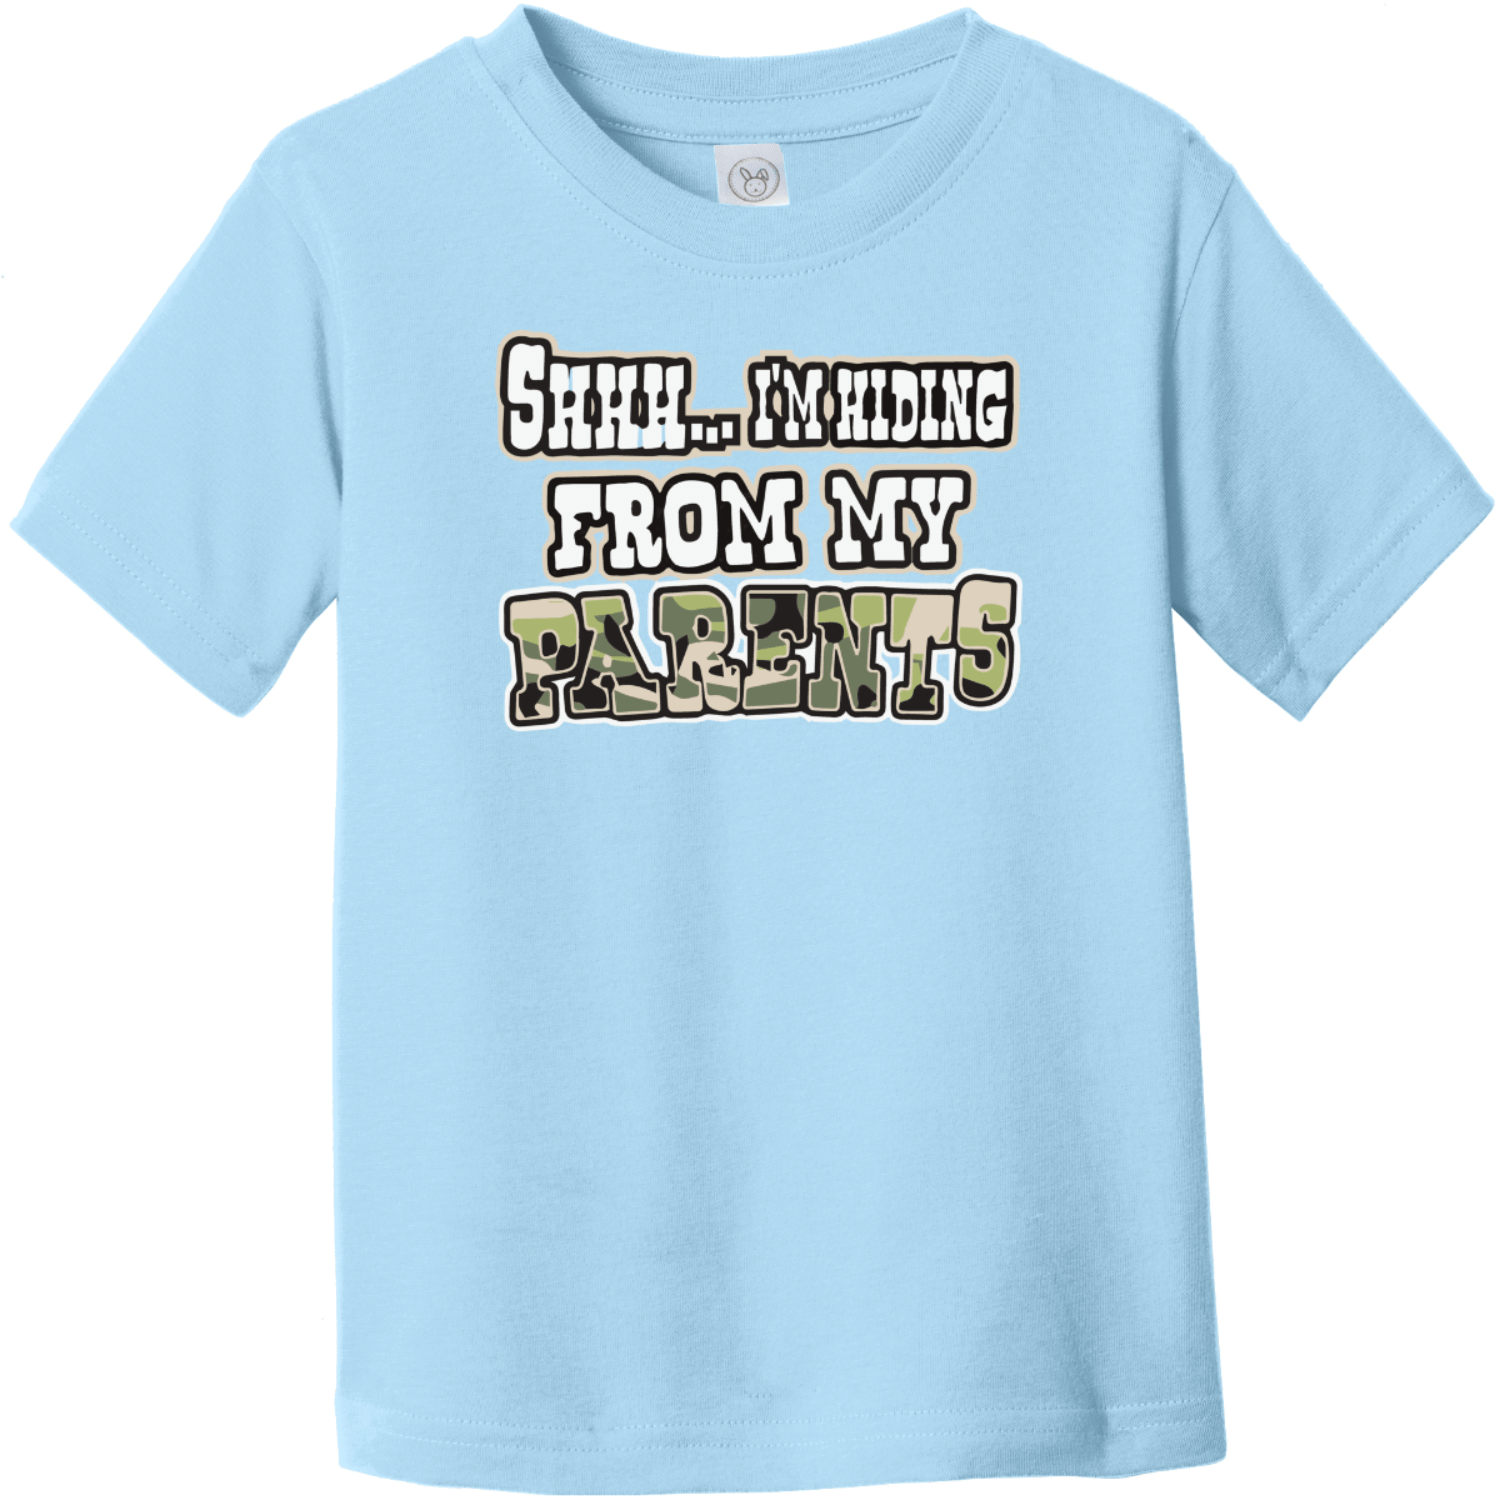 Shhh I'm Hiding From My Parents Toddler T-Shirt Light Blue Rabbit Skins Toddler Fine Jersey Tee RS3321